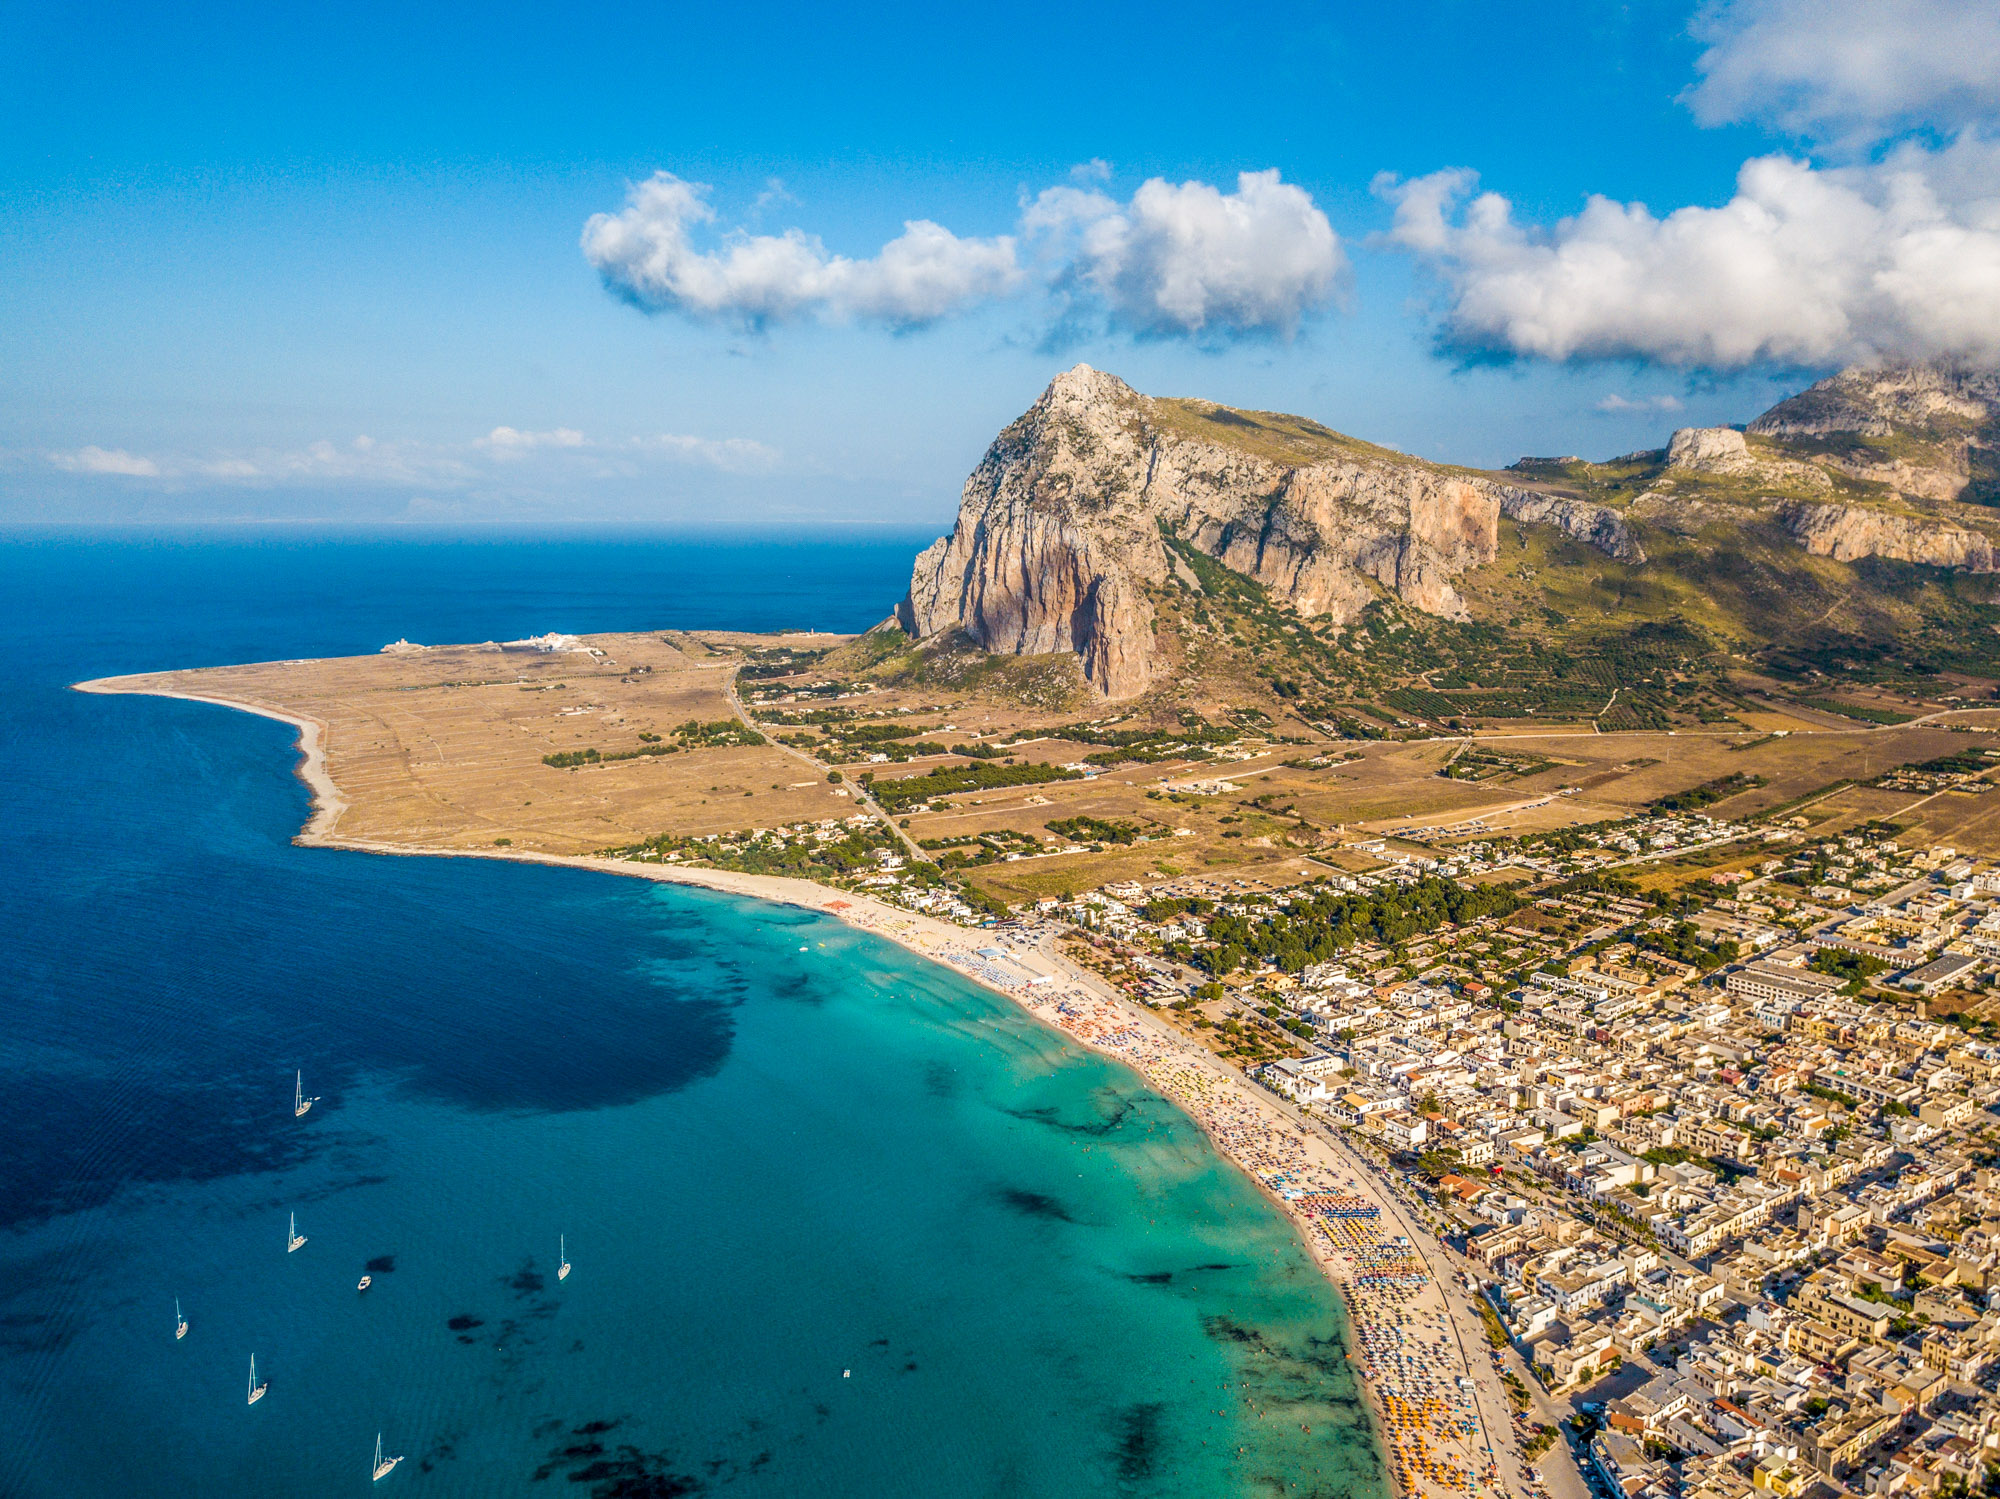 San Vito Lo Capo - Sicily - Italy - Jeff On The Road - Photo by Luiz Centenaro on Unsplash - https://unsplash.com/photos/RmKuptjdM88